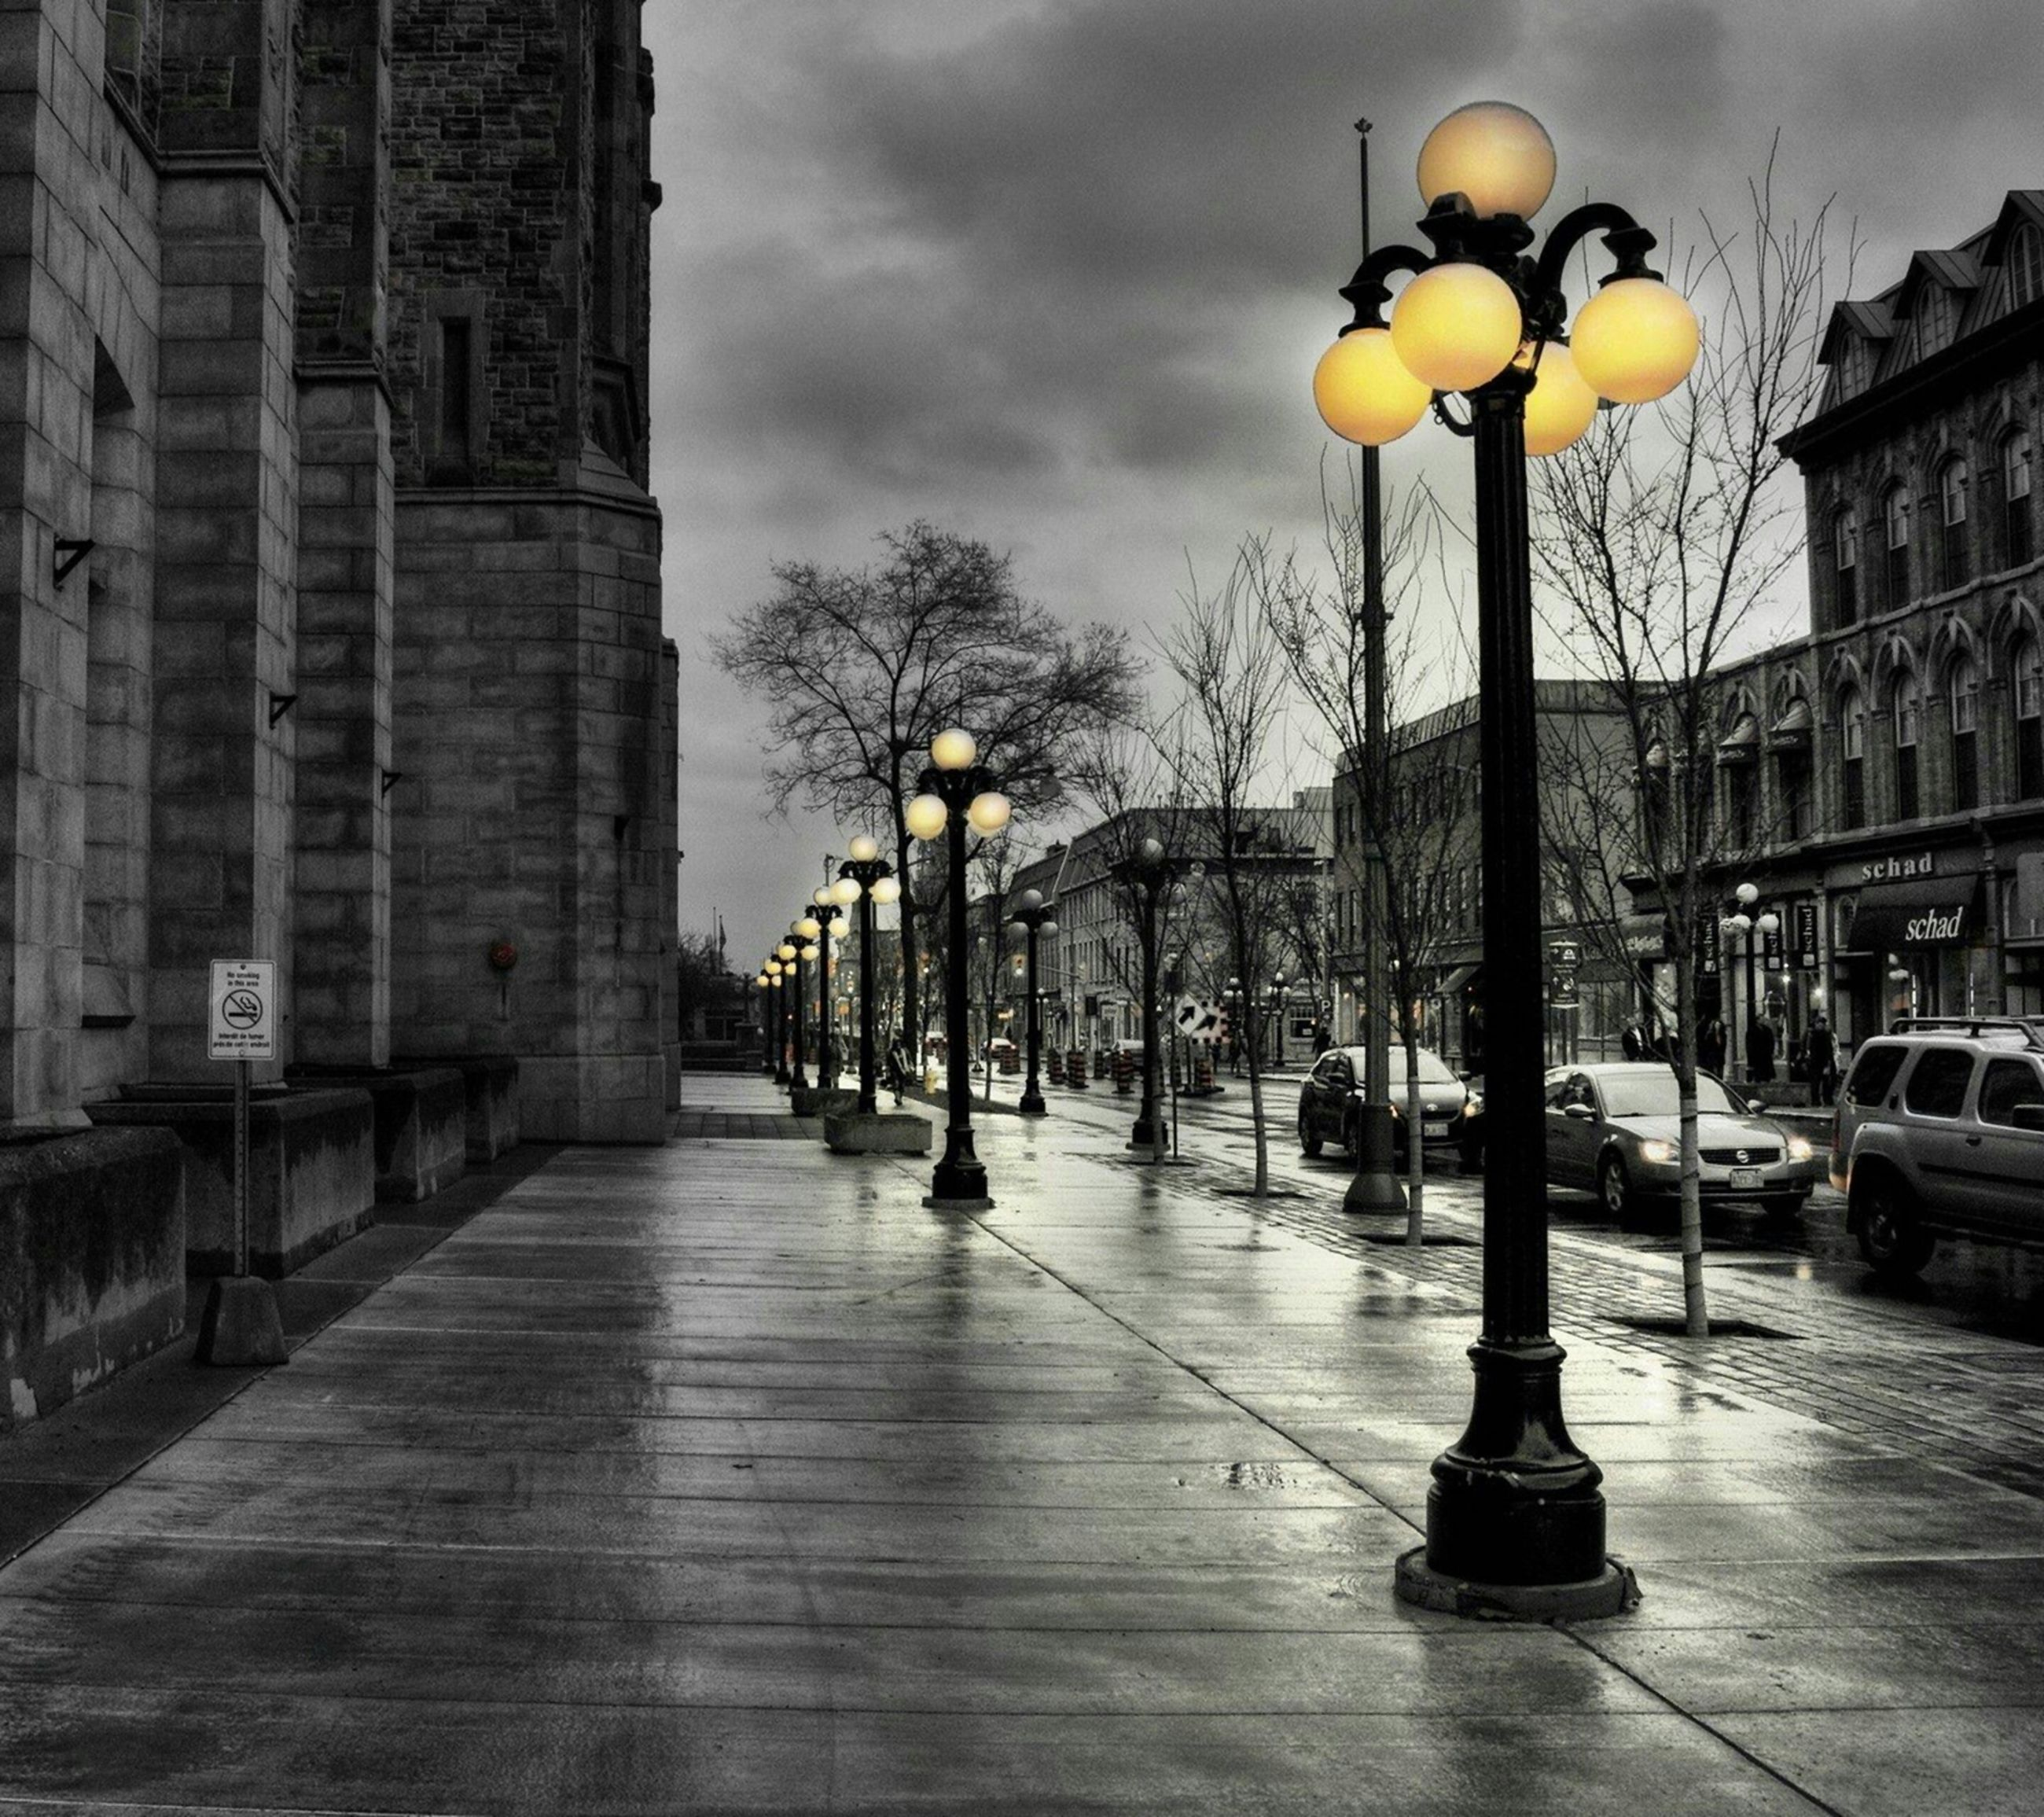 building exterior, architecture, built structure, street light, city, street, lighting equipment, illuminated, transportation, the way forward, tree, sky, city street, city life, car, incidental people, diminishing perspective, road, building, dusk